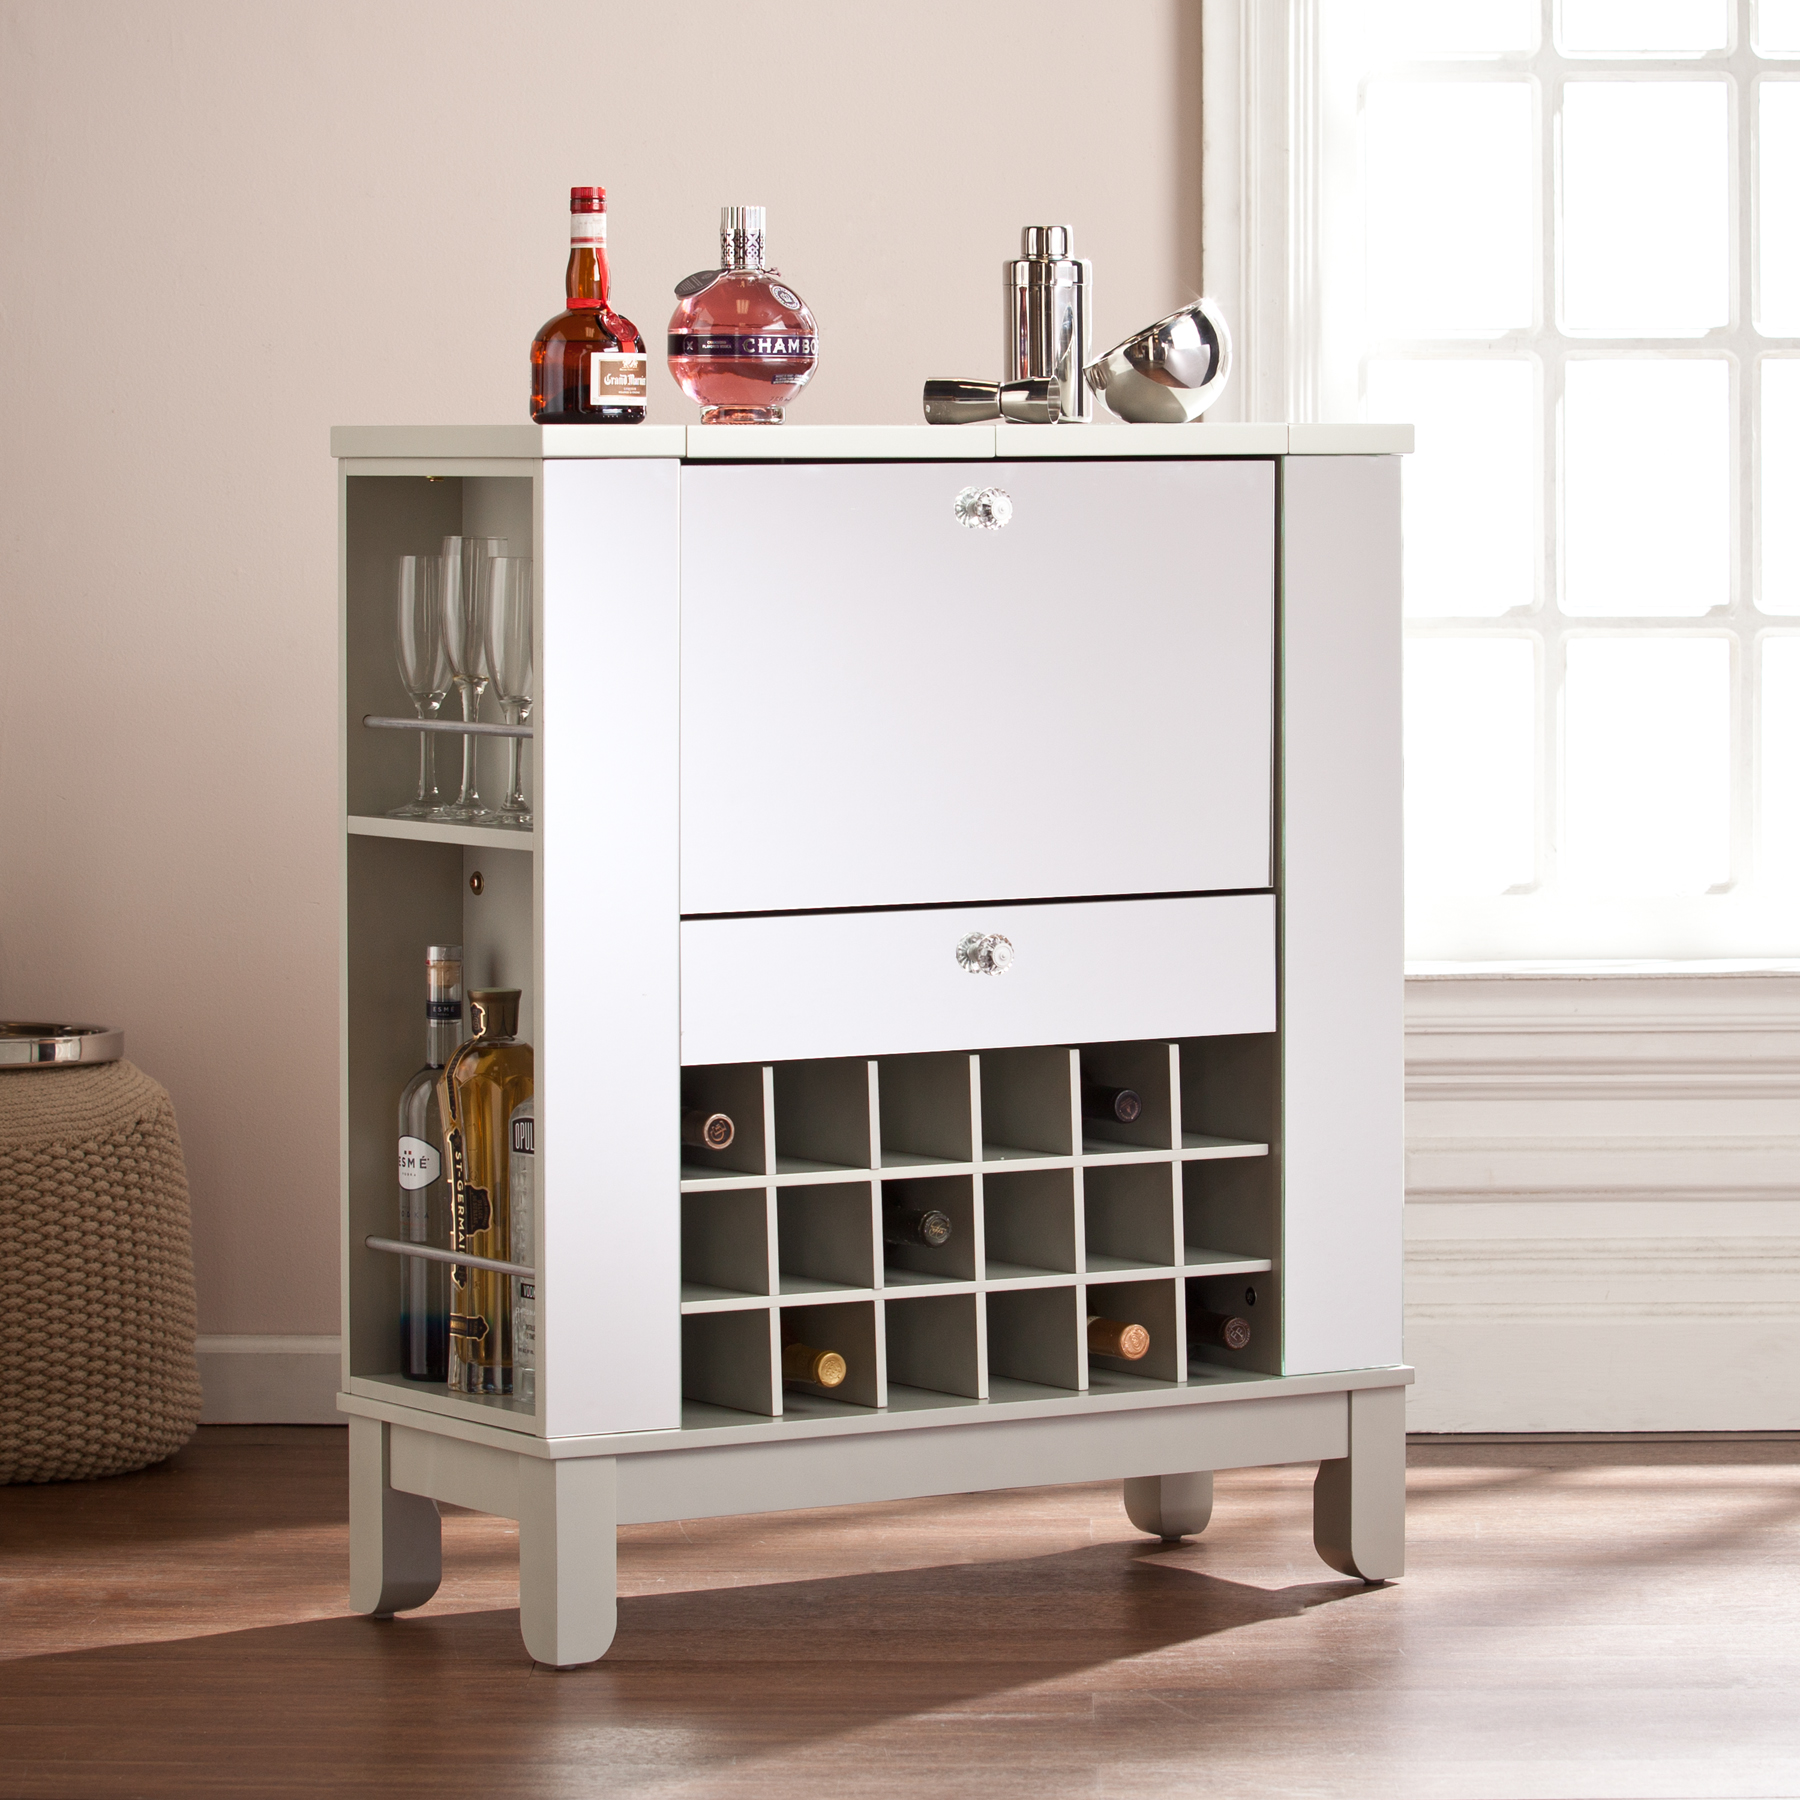 Best Mirage Mirrored Fold-Out Wine/Bar Cabinet TB41